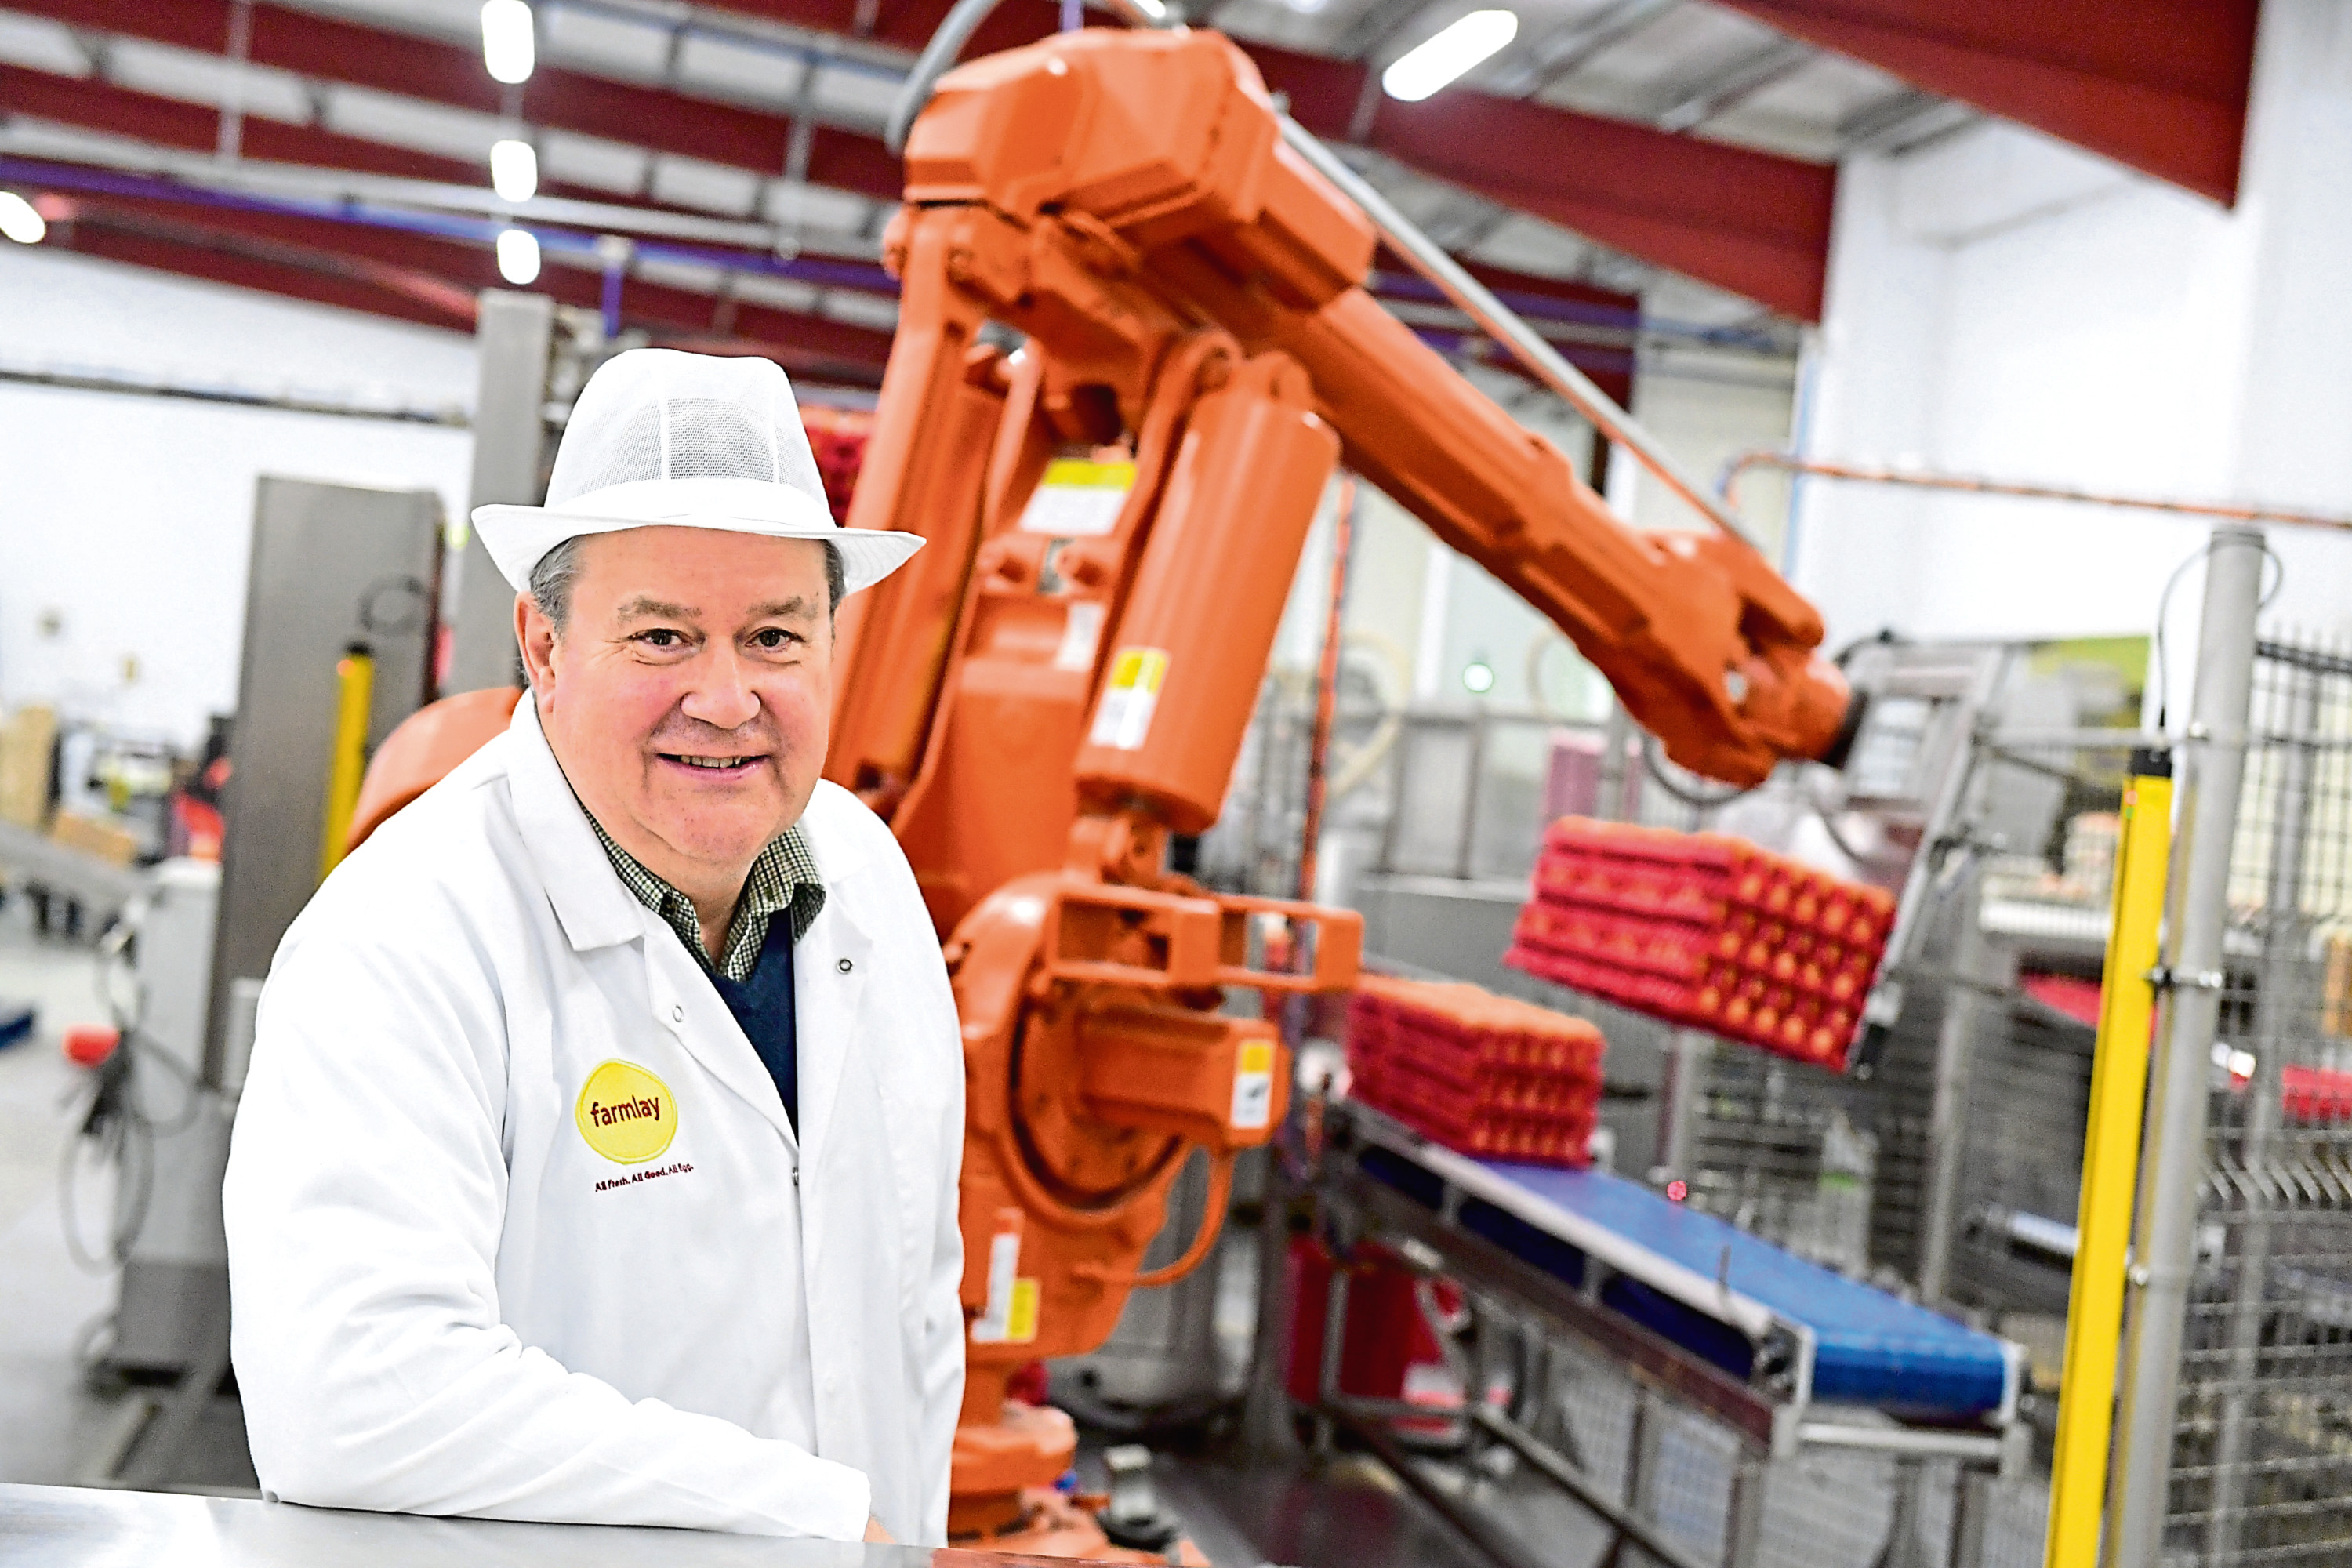 Robert Chapman of Farmlay Eggs with the robots at the firm's plant in Strichen.